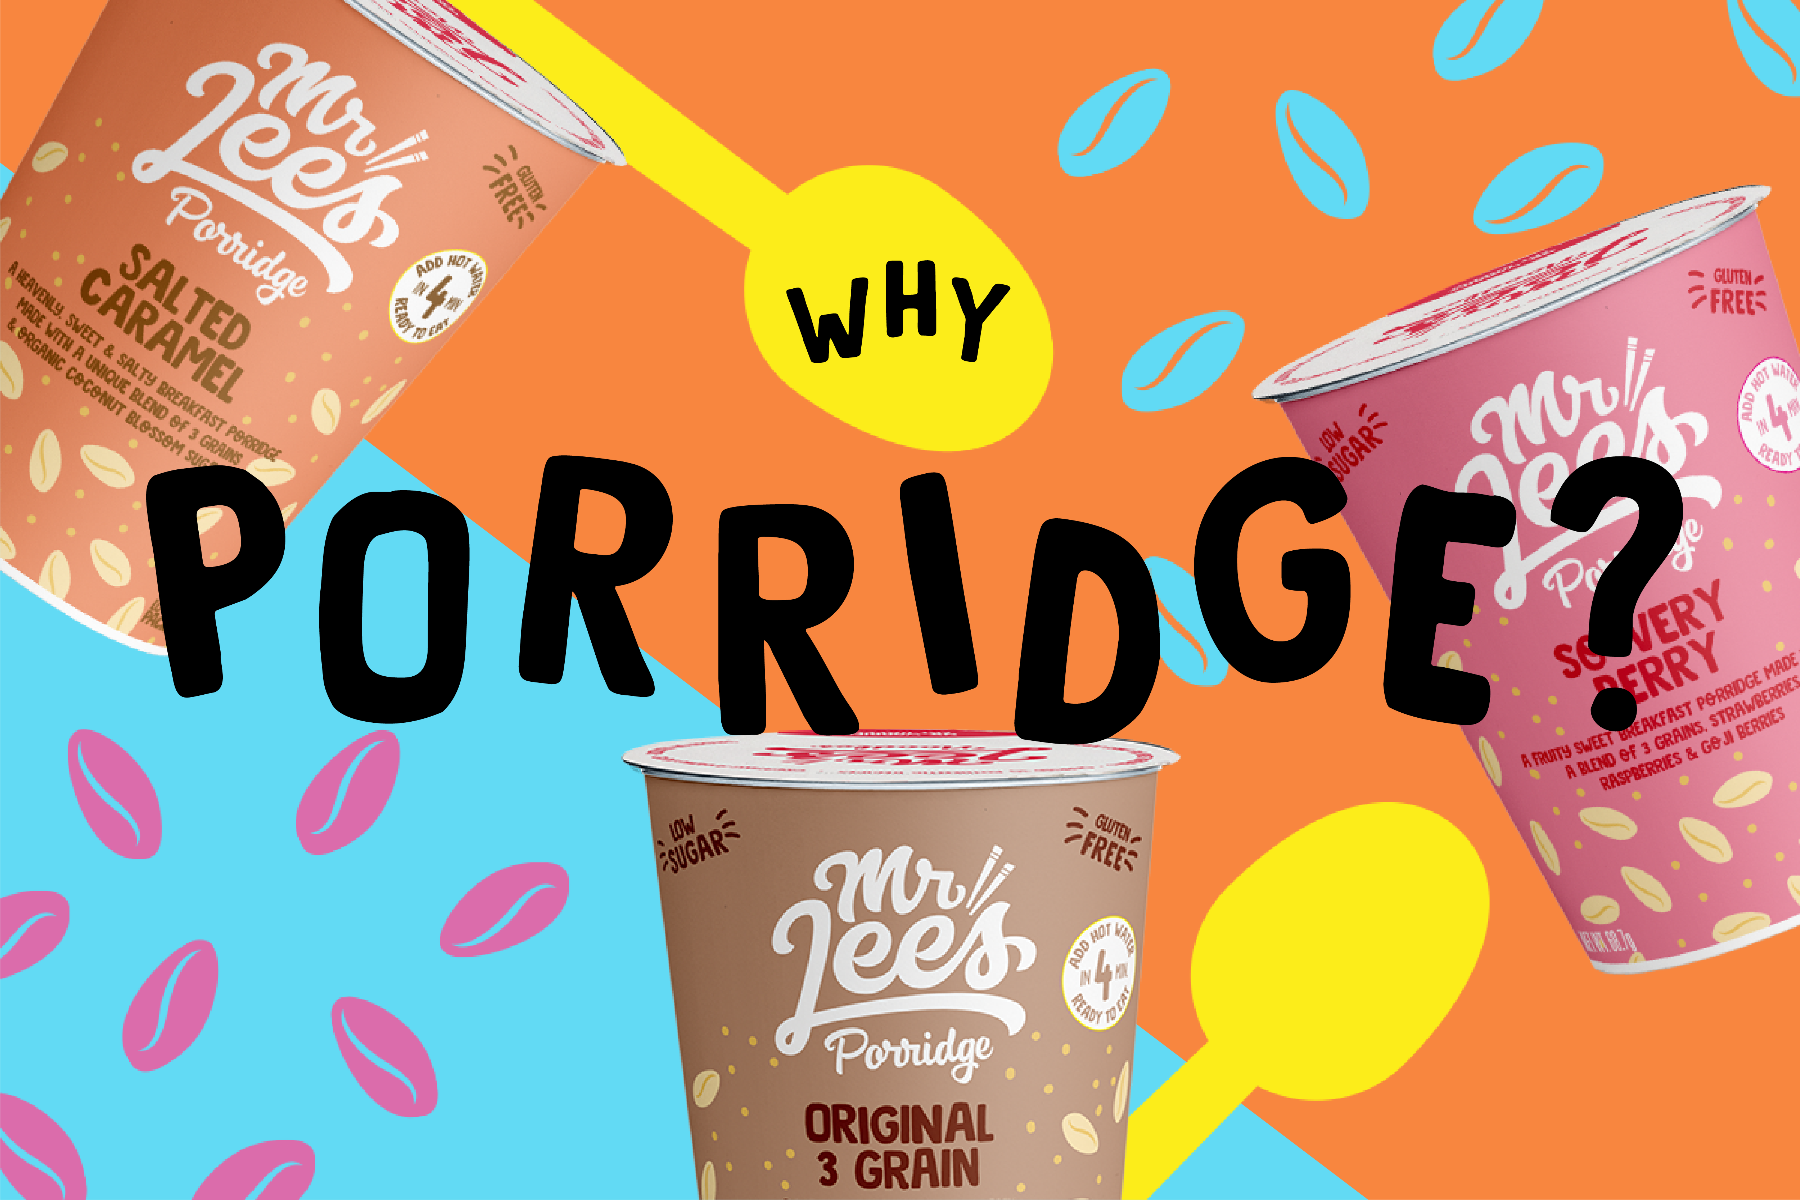 Mr Lee's So very berry, Salted Caramel and Original porridge pots on a coloured background of grains